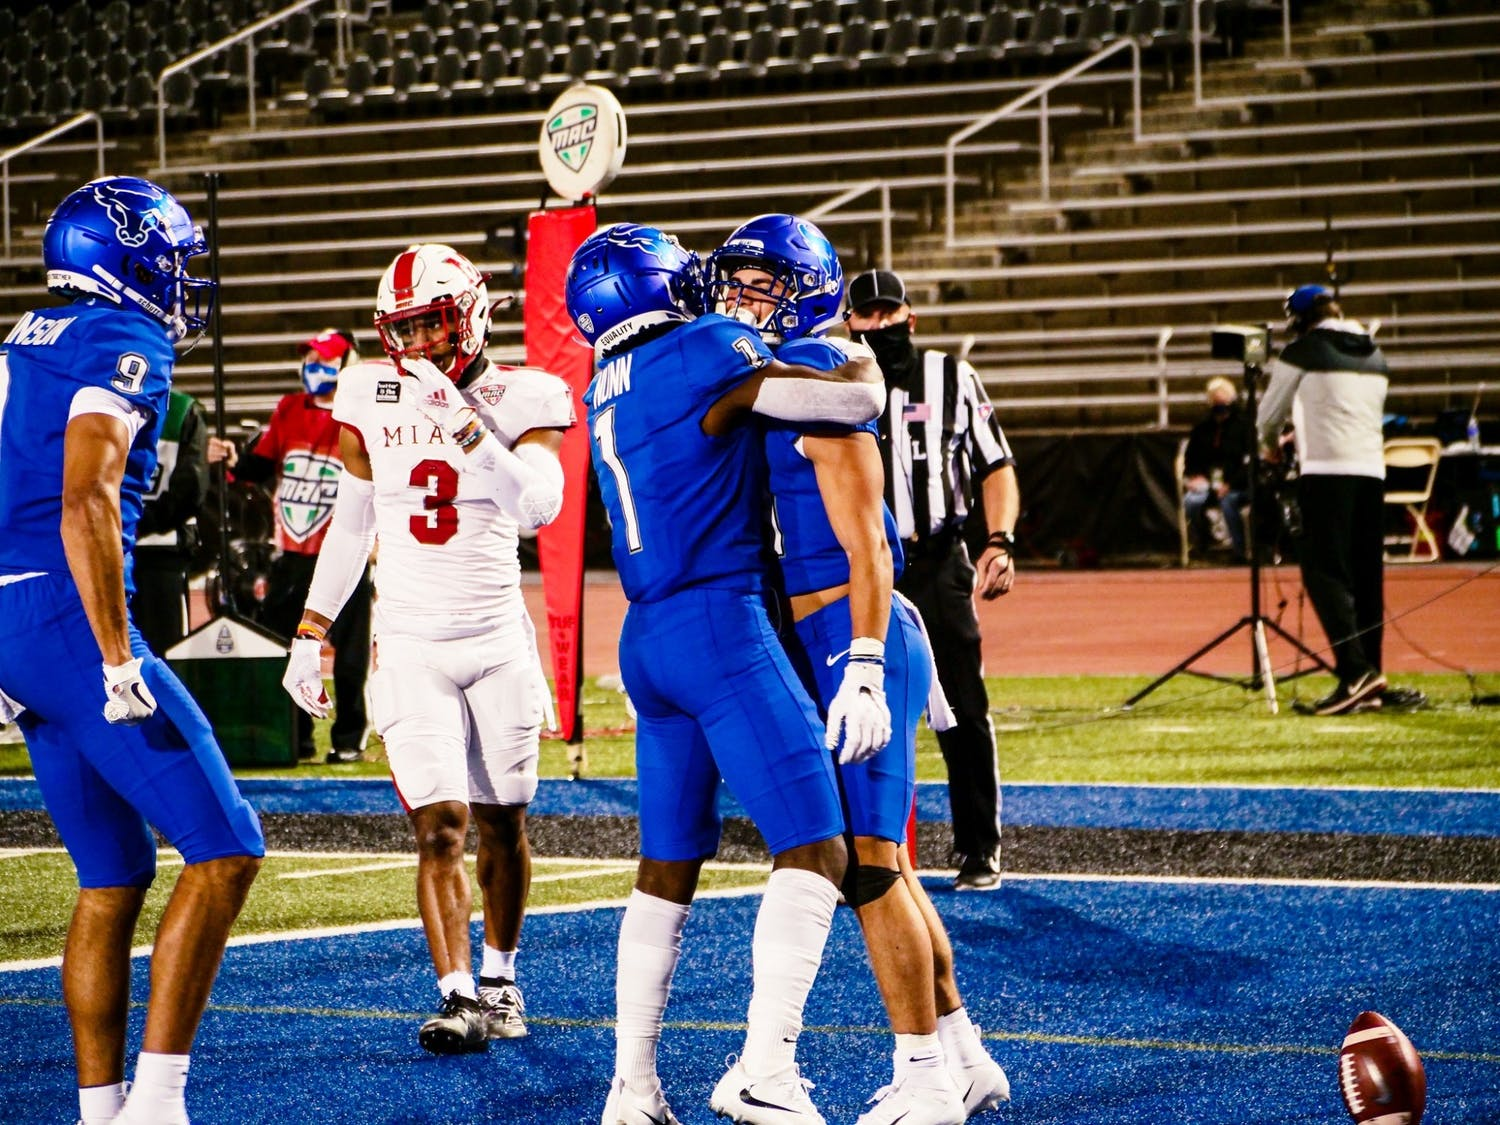 Senior wide receivers Antonio Nunn (1) and Jovany Ruiz (41) celebrate after a UB touchdown.